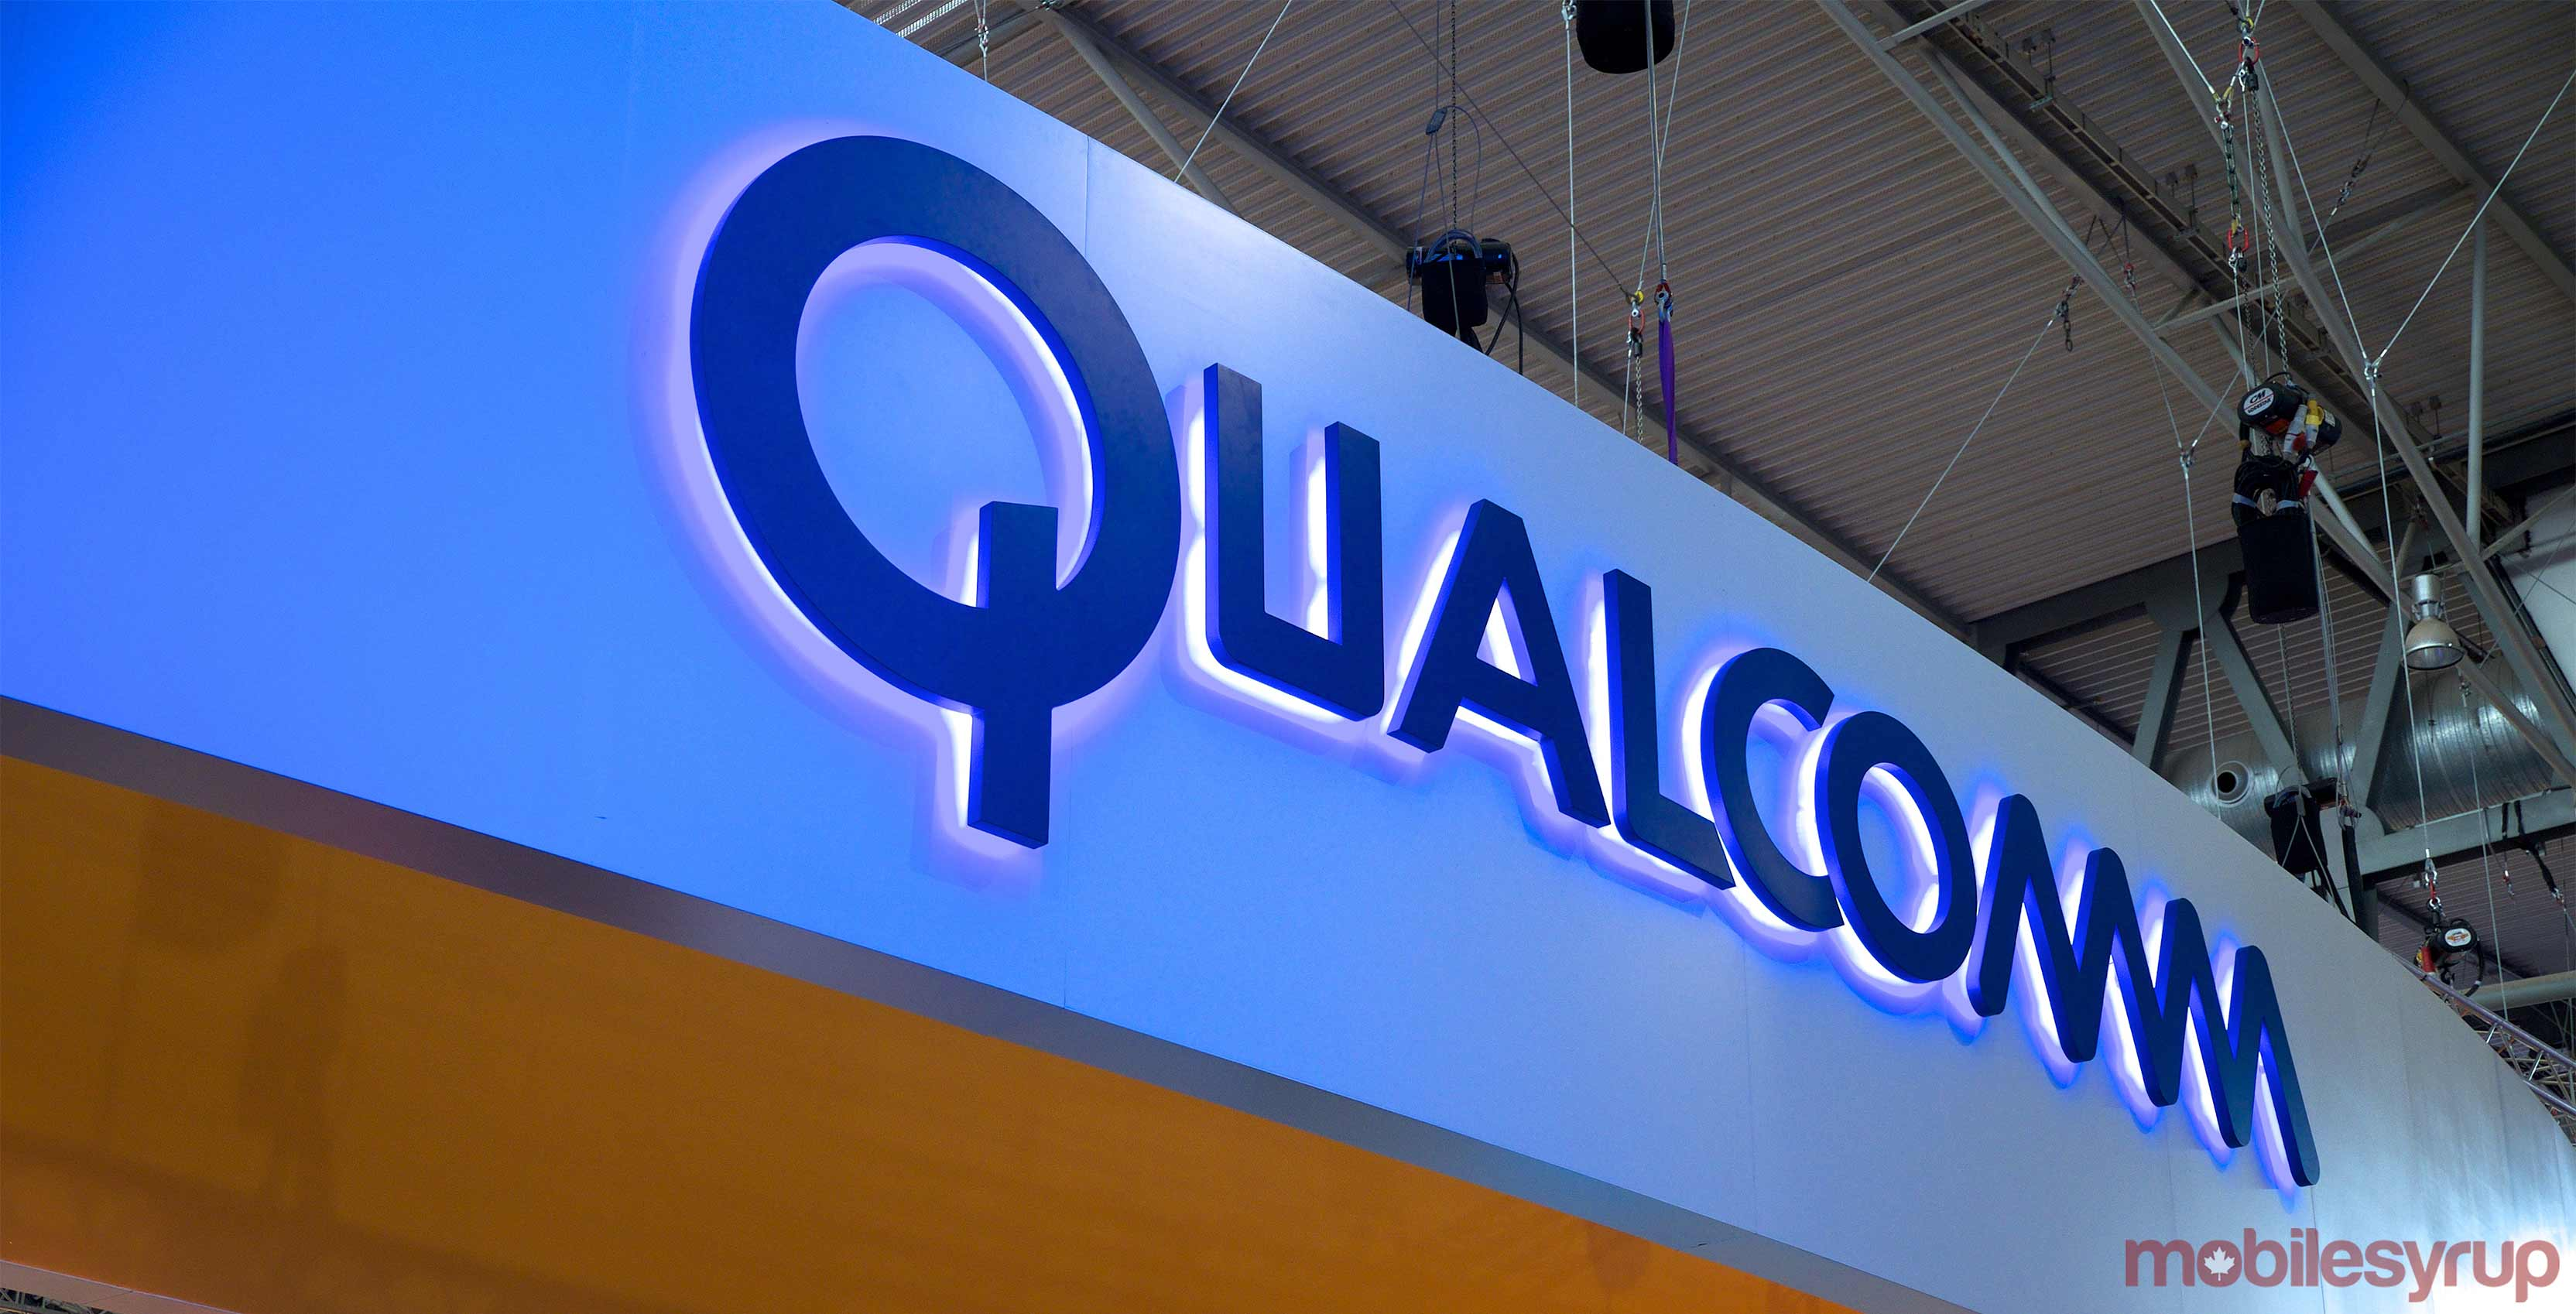 Qualcomm's unannounced Snapdragon 855 might be the first 7nm